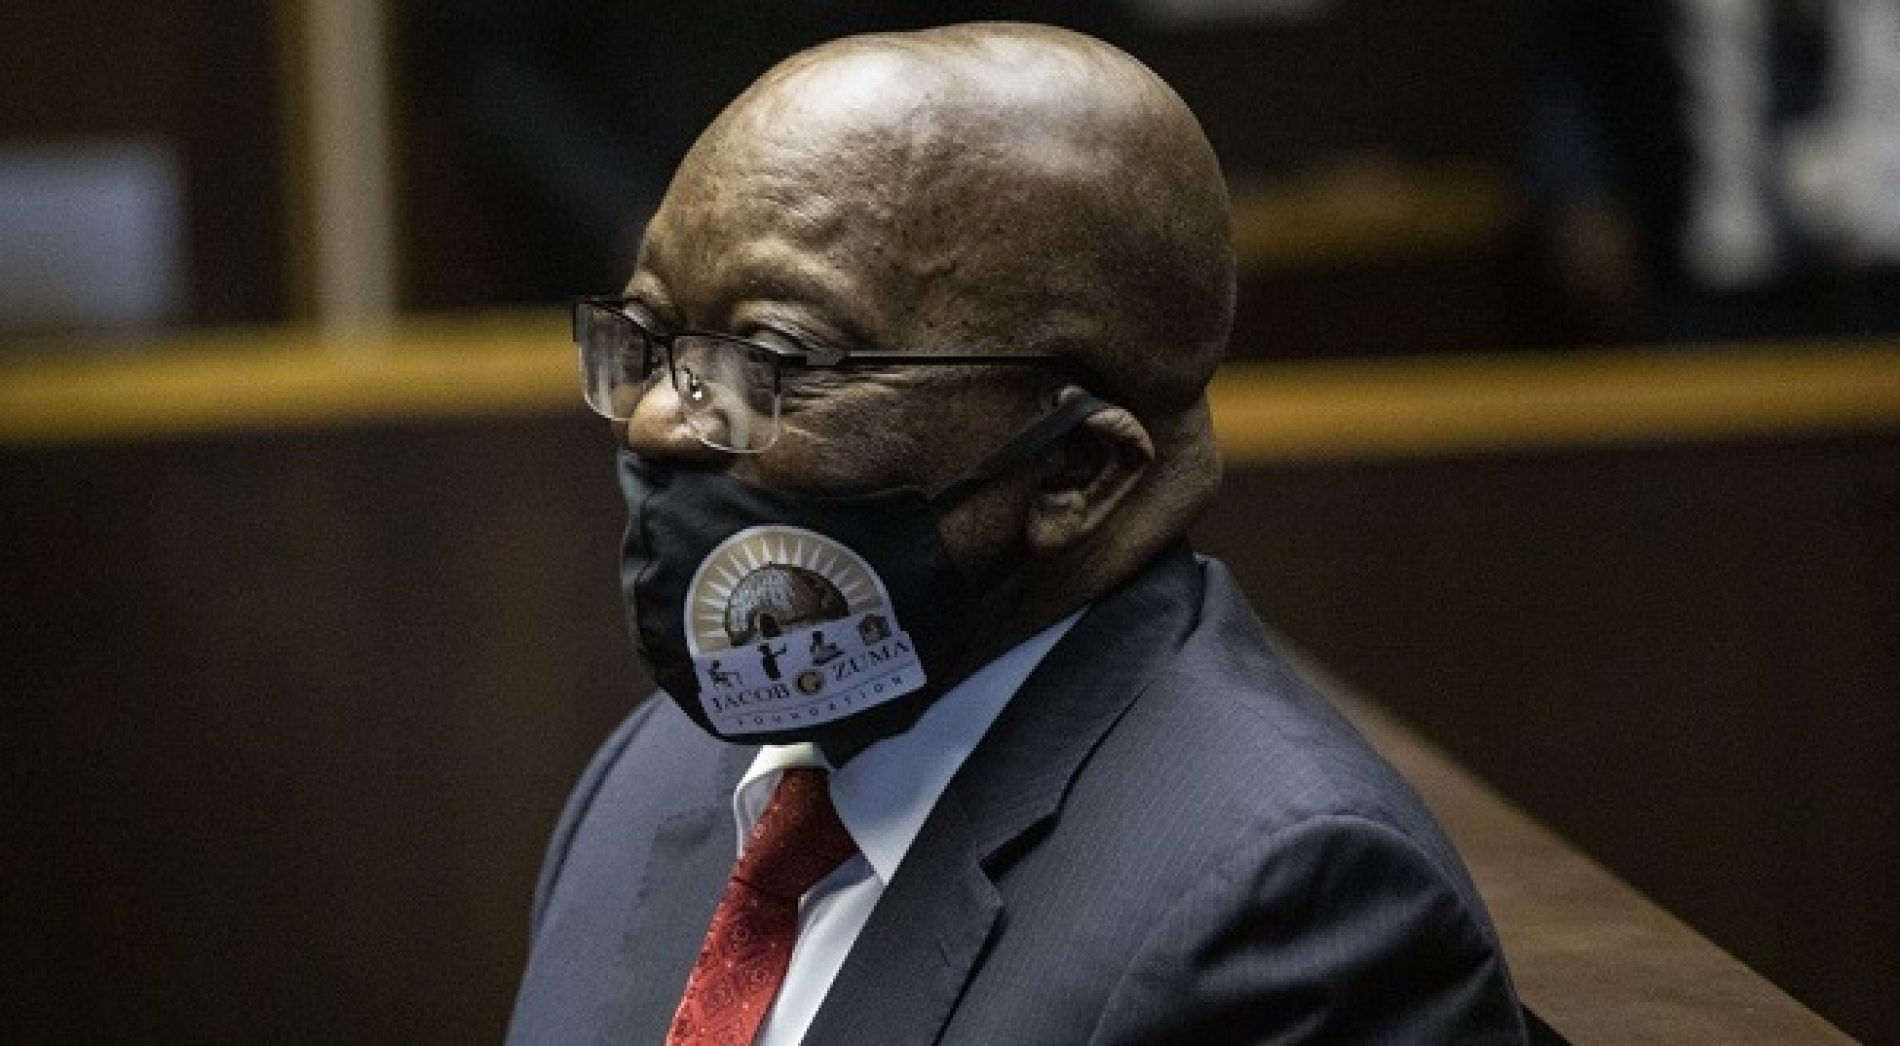 Corruption Case: Zuma Returns To Court For Pre-Trial Hearing